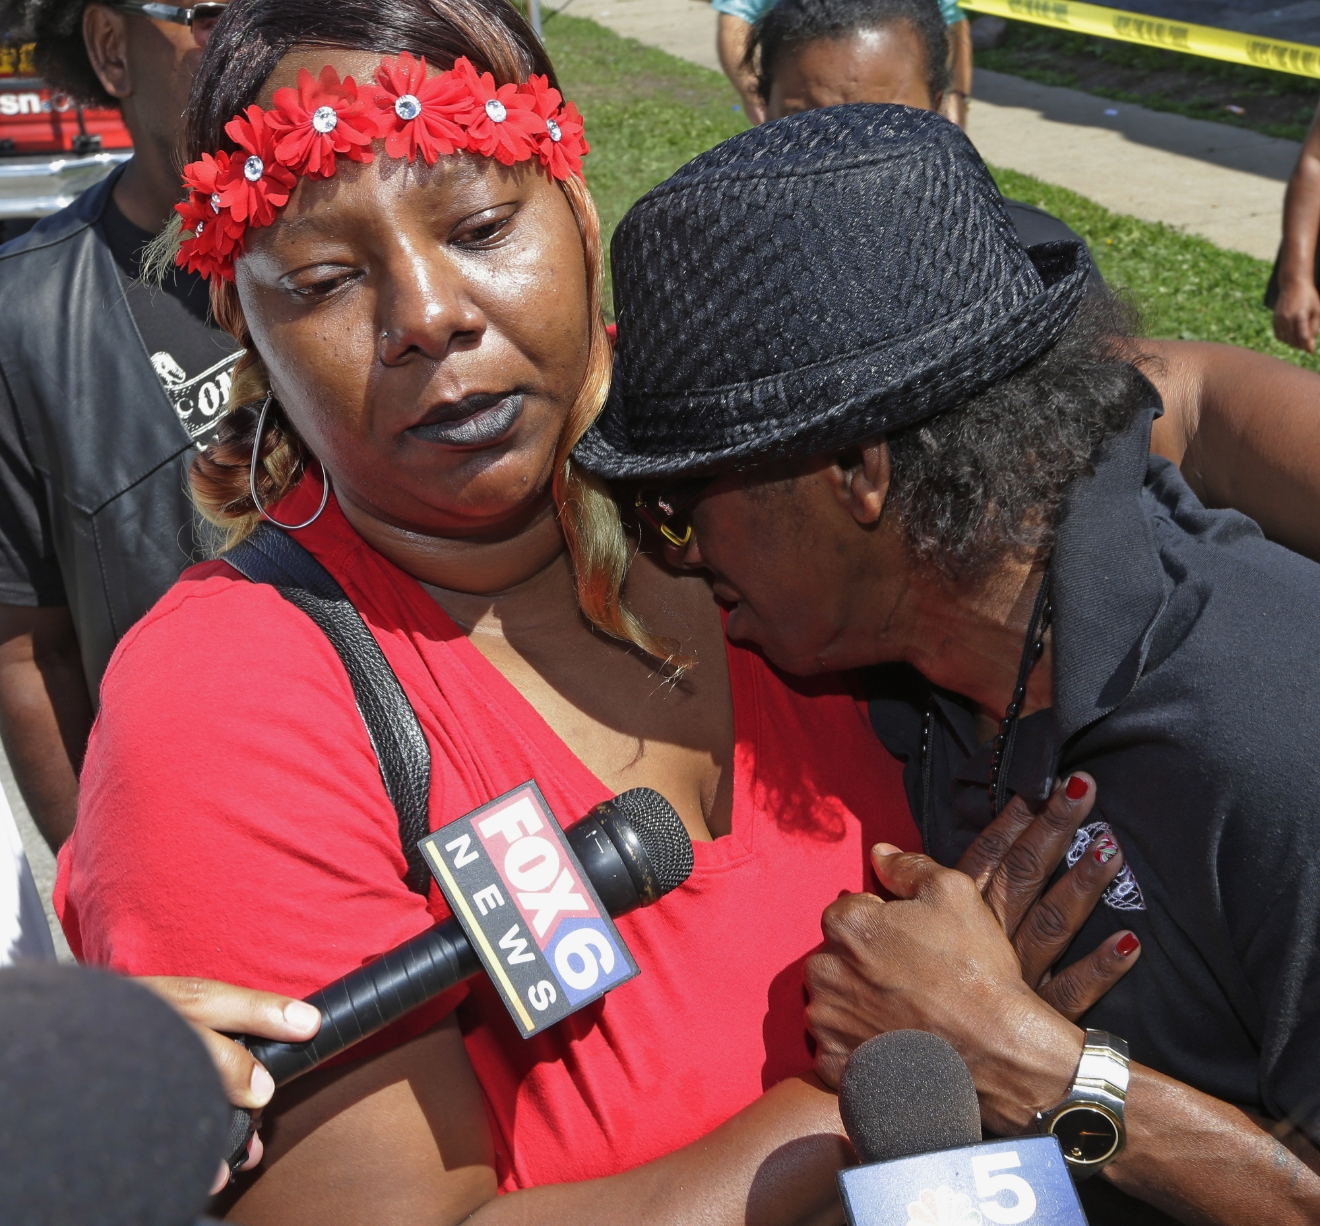 One Person Shot In Milwaukee Protest But No Repeat Of